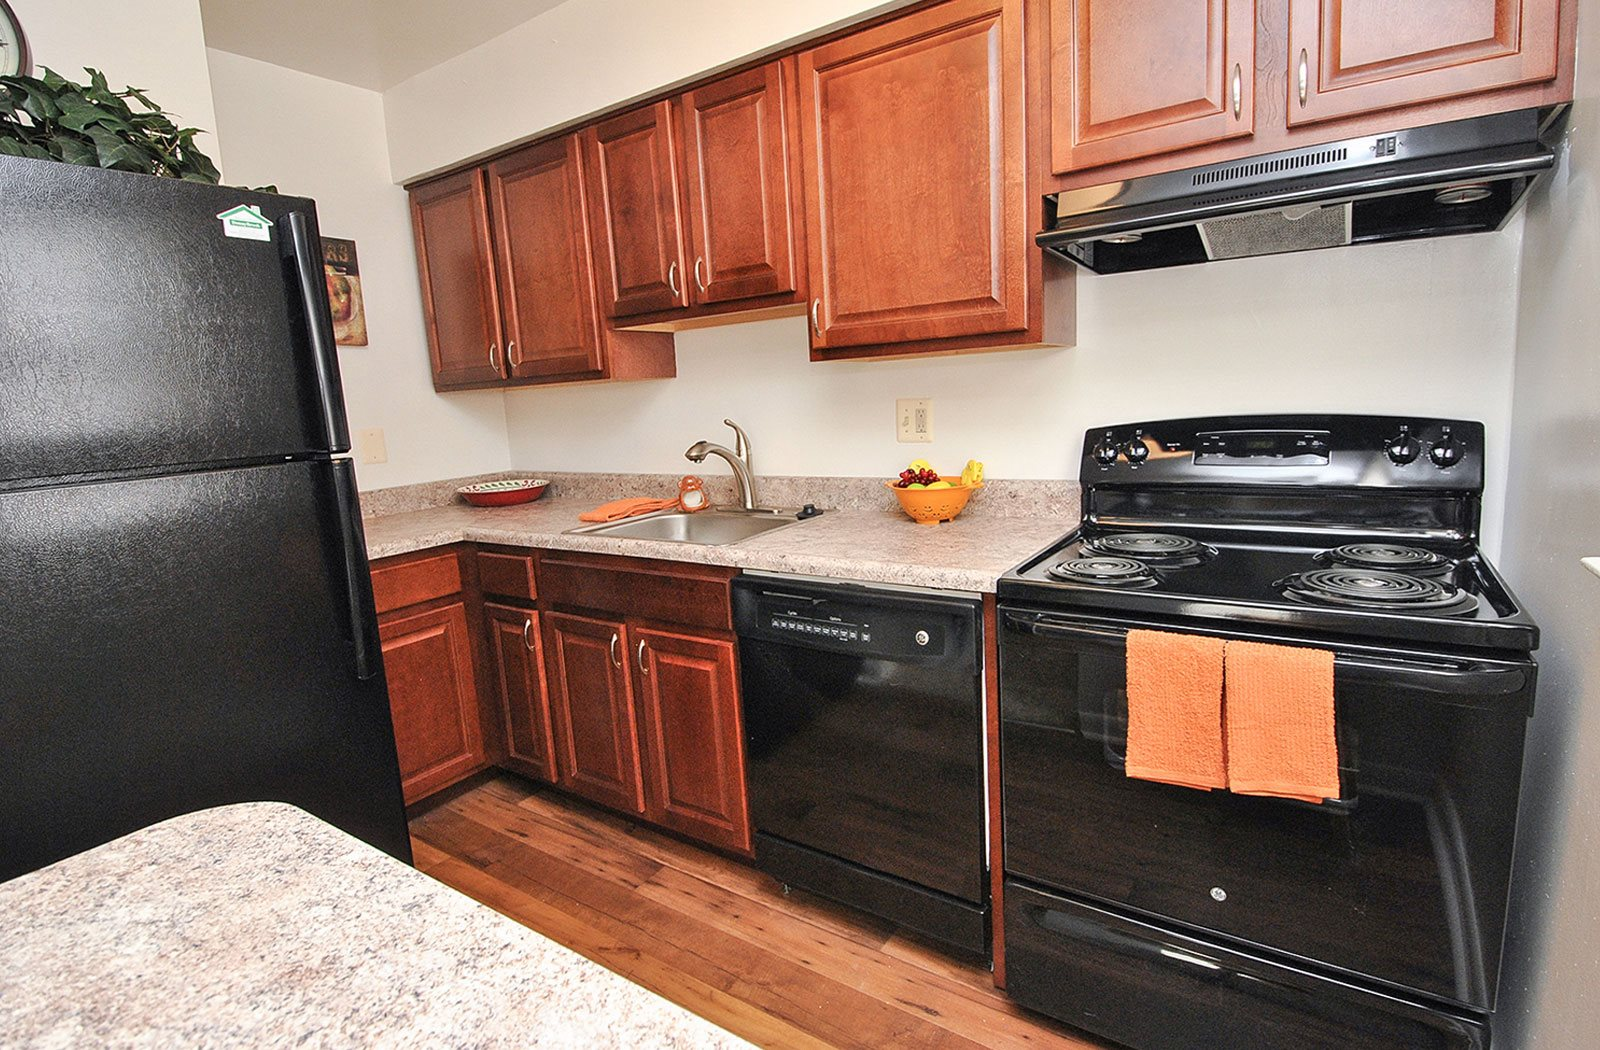 New Countertops and Cabinets at Donnybrook Apartments, Towson, MD, 21286